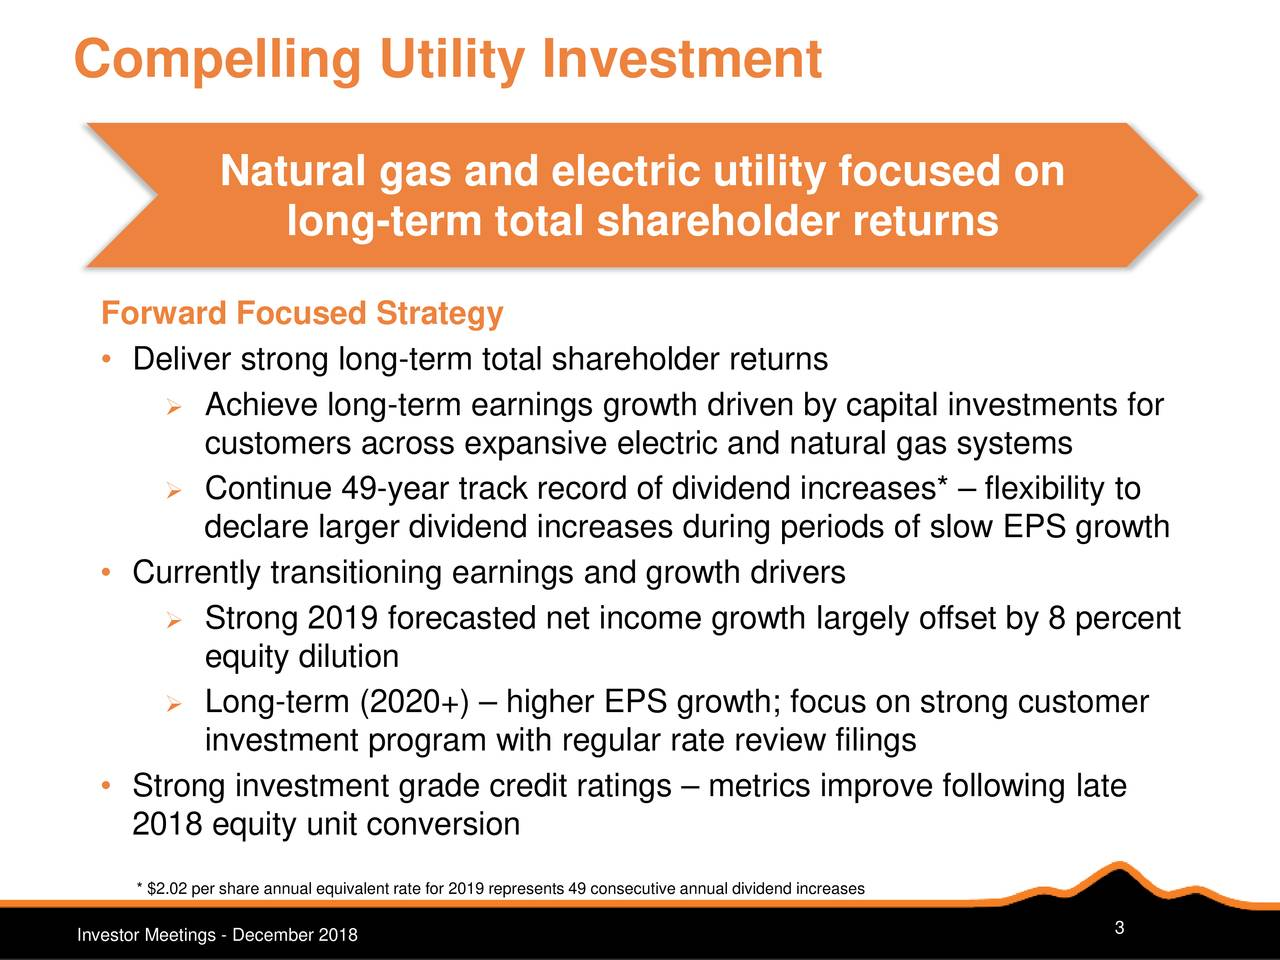 Natural gas and electric utility focused on long-term total shareholder returns Forward Focused Strategy • Deliver strong long-term total shareholder returns  Achieve long-term earnings growth driven by capital investments for customers across expansive electric and natural gas systems  Continue 49-year track record of dividend increases*– flexibility to declare larger dividend increases during periods of slow EPS growth • Currently transitioning earnings and growth drivers  Strong 2019 forecasted net income growth largely offset by 8 percent equity dilution  Long-term (2020+) – higher EPS growth; focus on strong customer investment program with regular rate review filings • Strong investment grade credit ratings – metrics improve following late 2018 equity unit conversion * $2.02 per share annual equivalent rate for 2019 represents 49 consecutive annual dividend increases Investor Meetings - December 2018 3